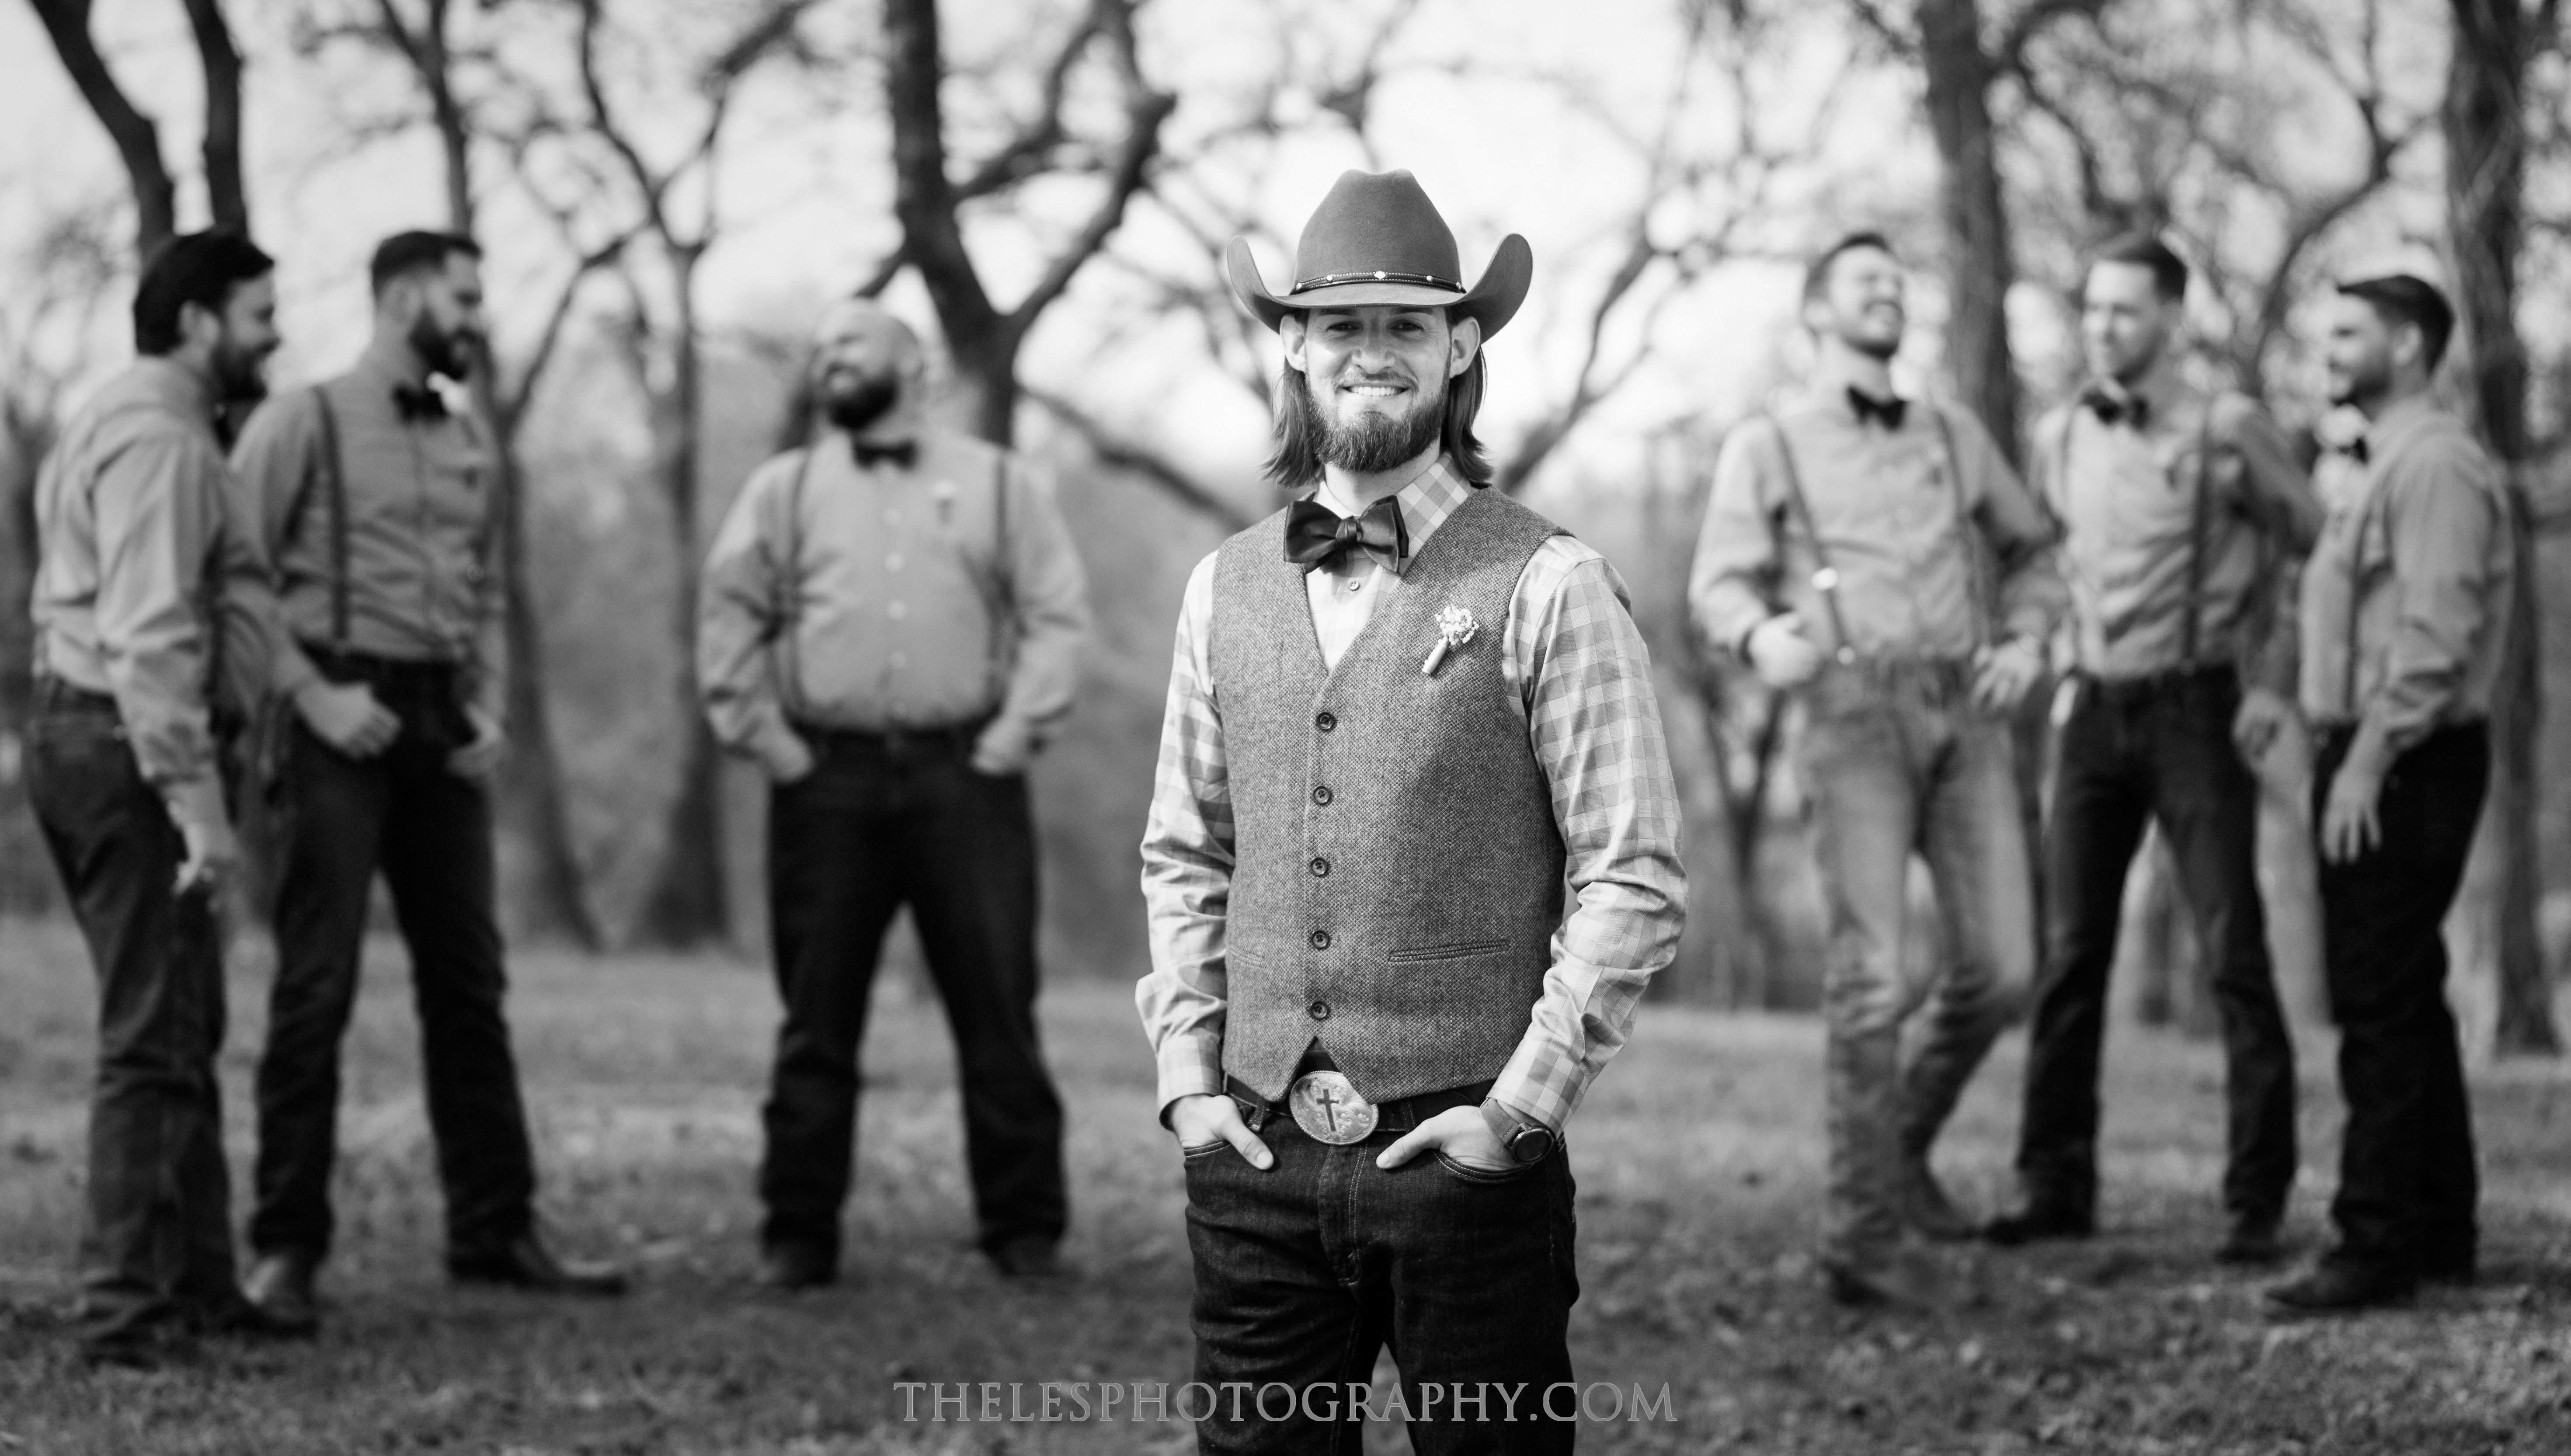 033 Dallas Wedding Photography - Photographer - The Les Photography - Fort Country Memories Wedding